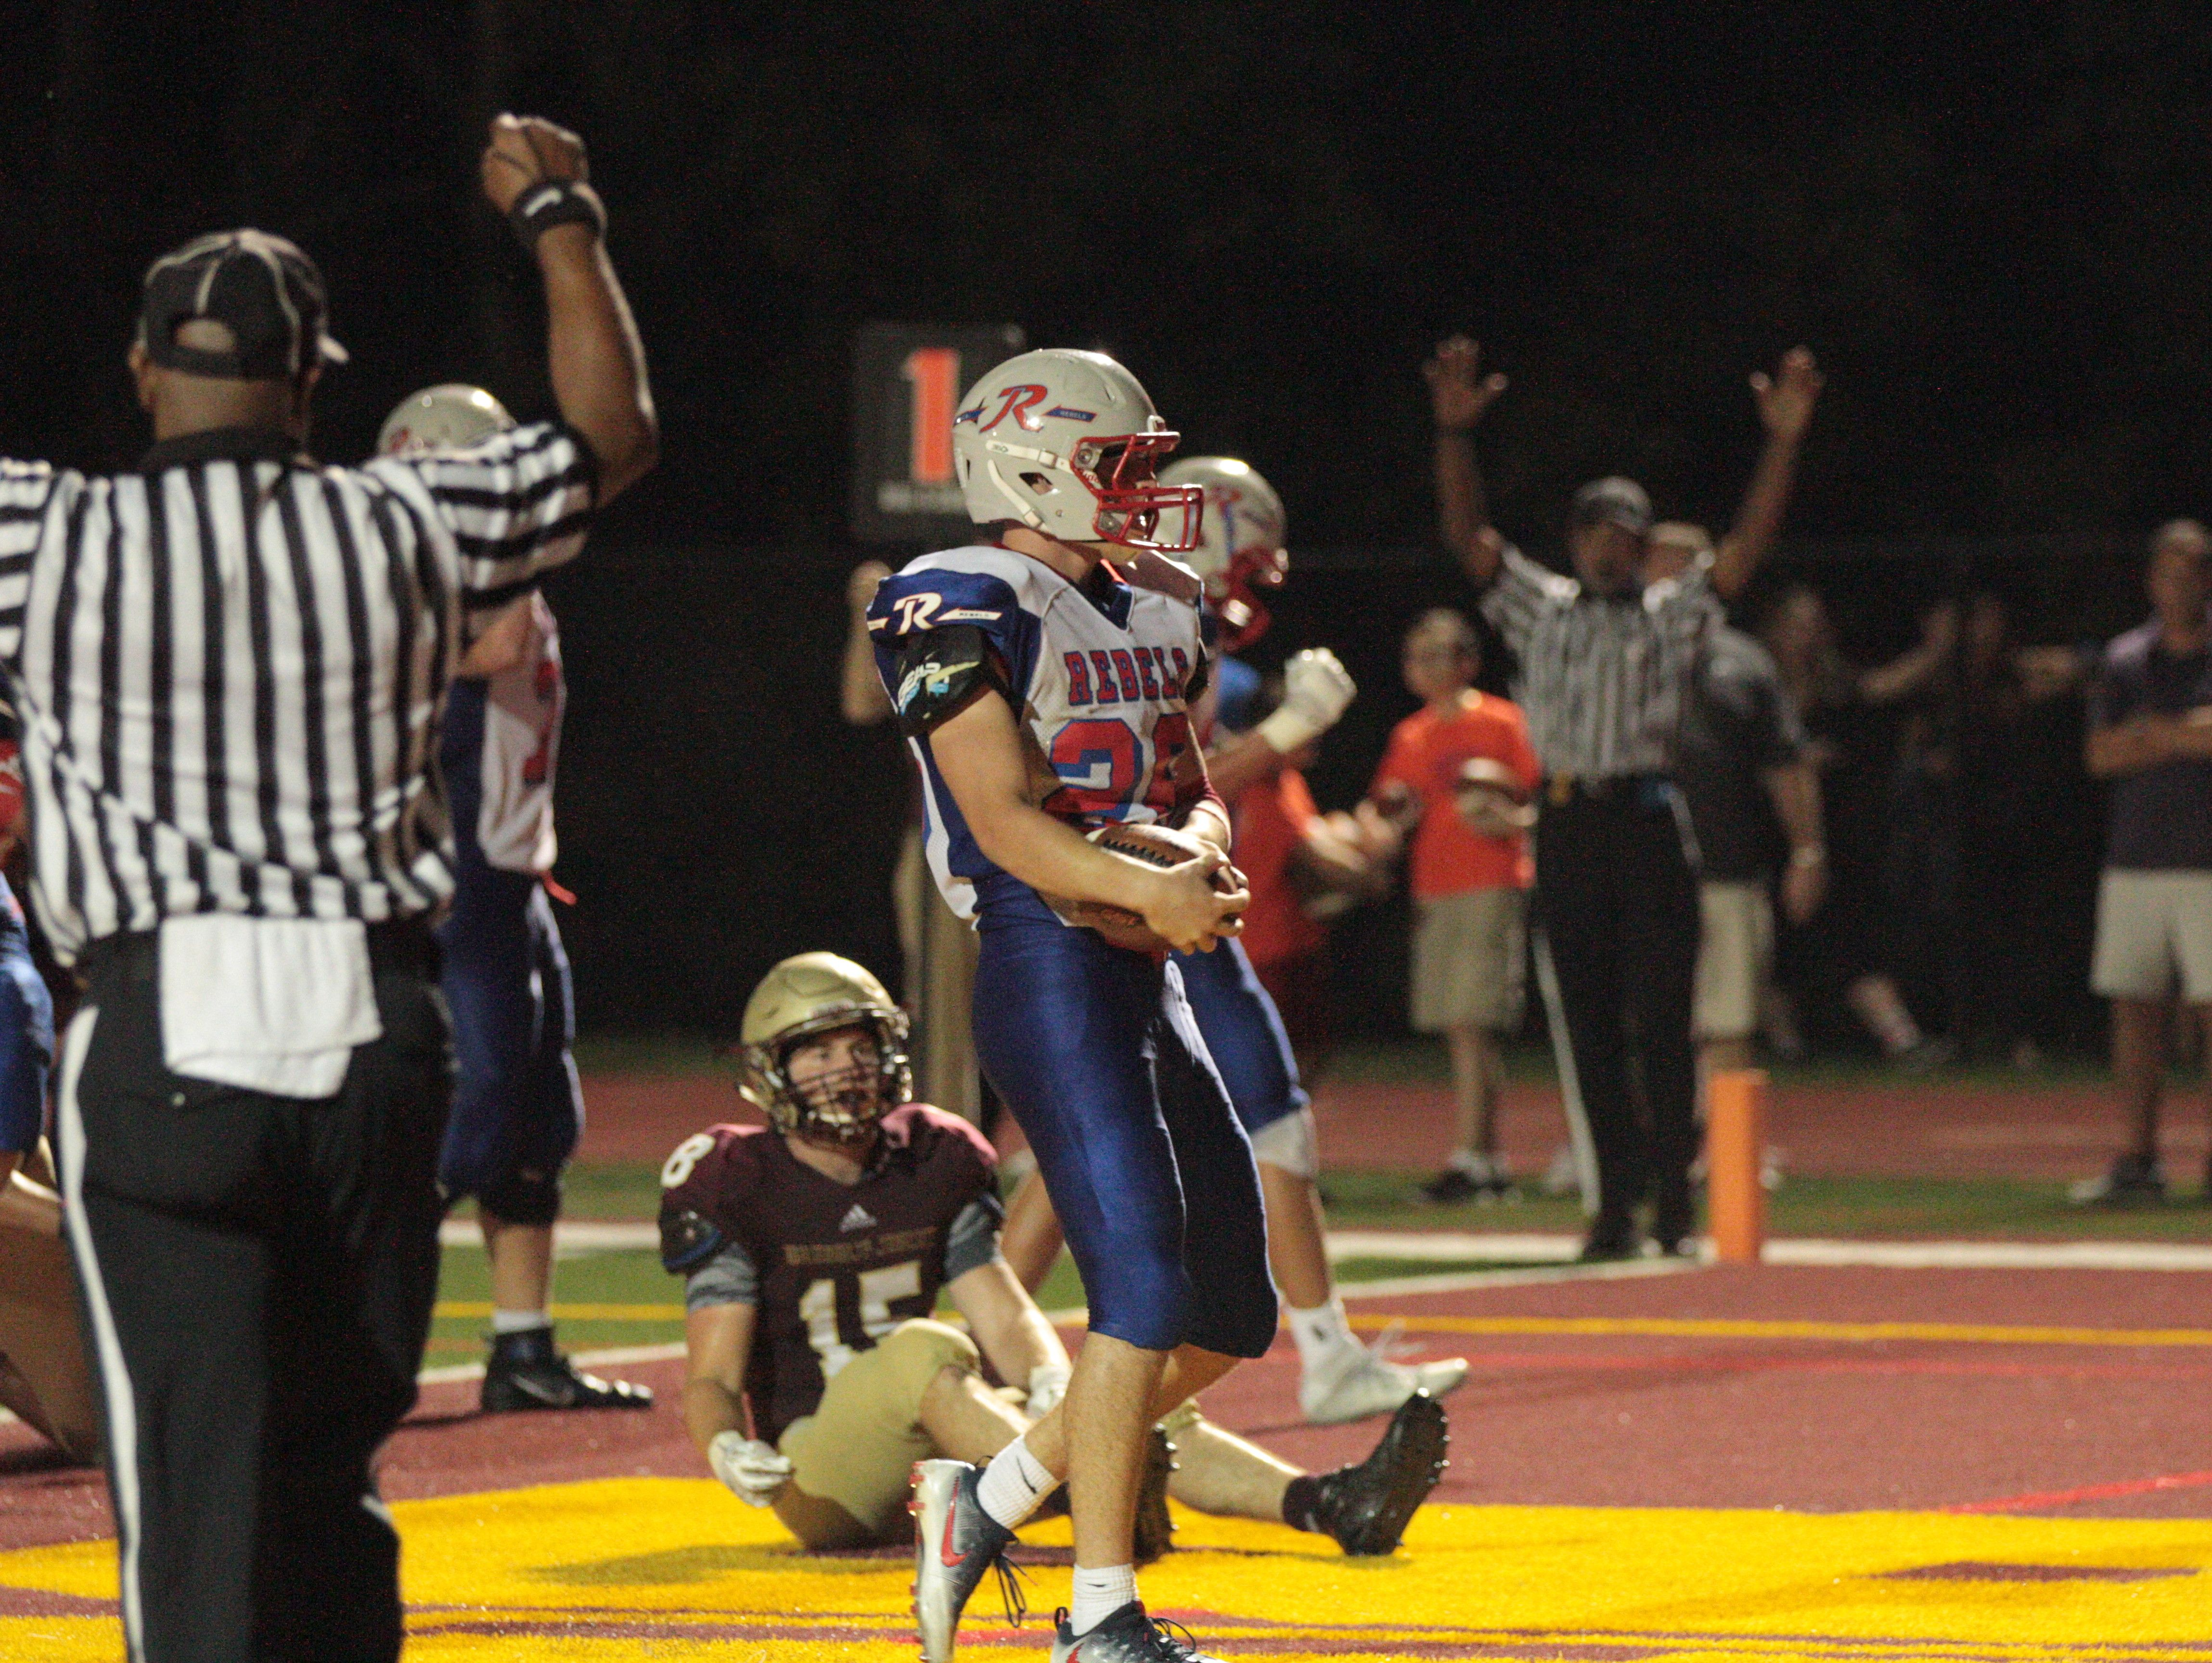 Roncalli running back Kenny Gillum scores on a two-yard touchdown run against Brebeuf on Friday night. Gillum finished with 62 yards on 17 carries.